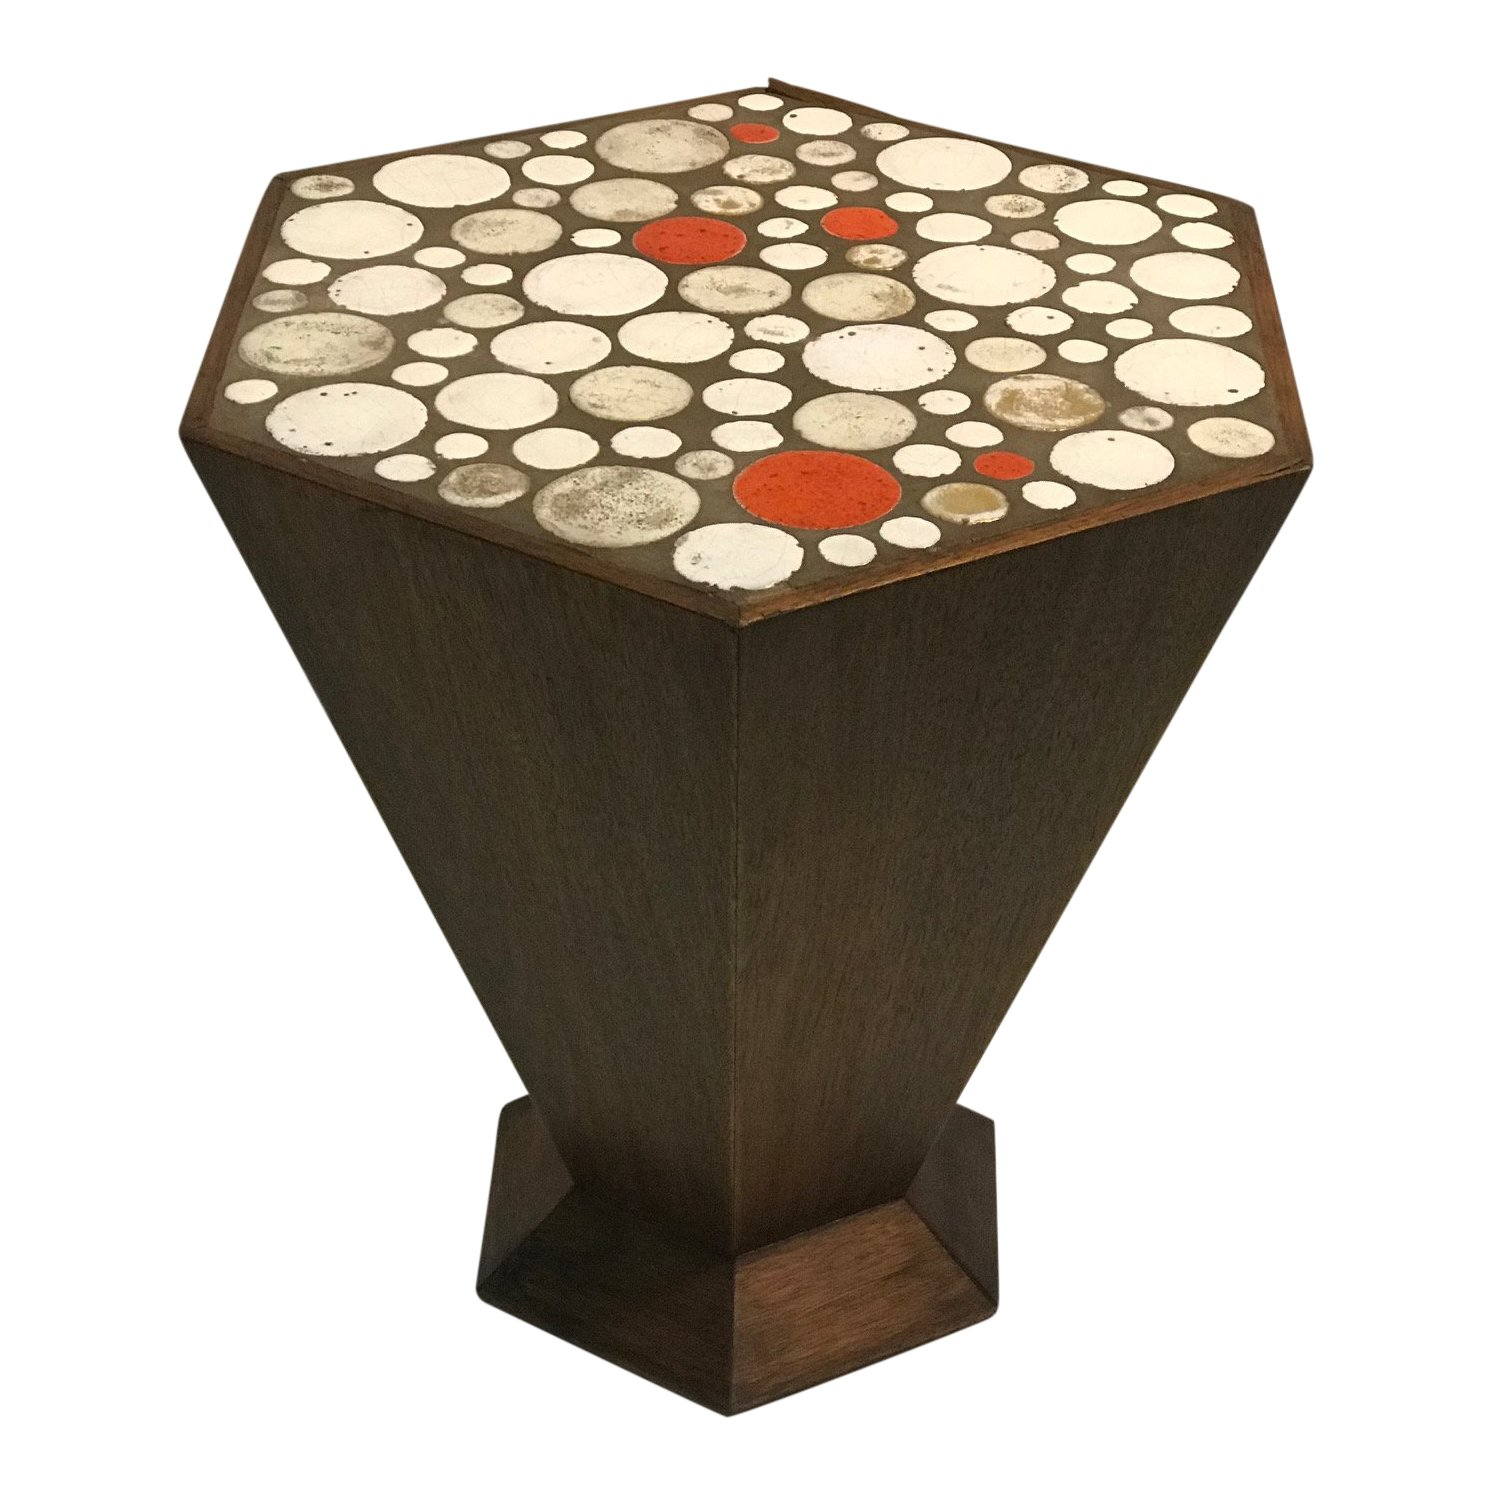 unusual tile accent table with beautiful colored high end tables mixed material zinc coffee west elm bedroom ideas garden chairs set modern light wood hampton bay spring haven